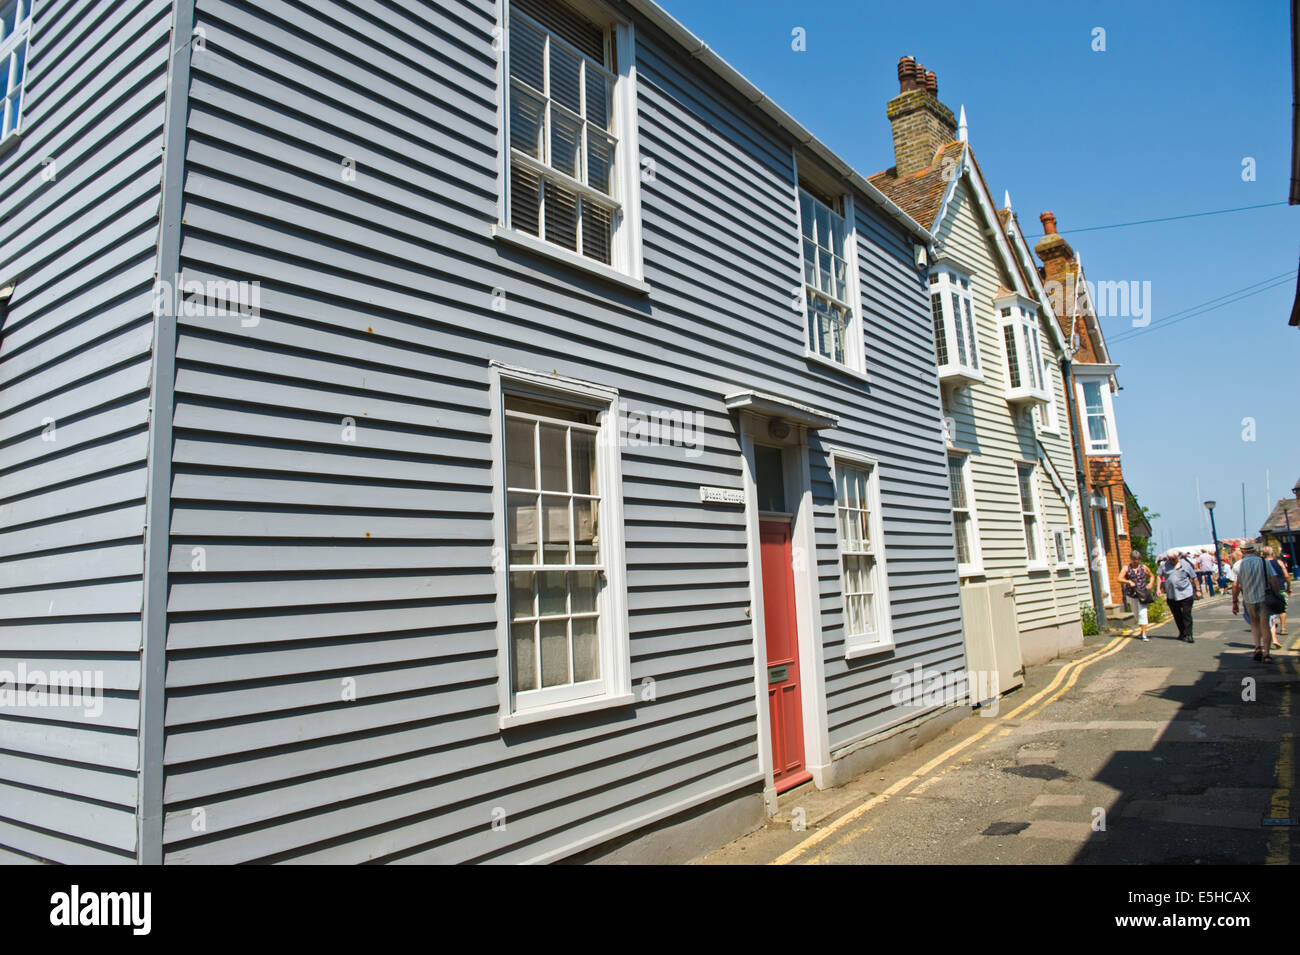 Typical Clapboard Houses At Whitstable Kent England Uk